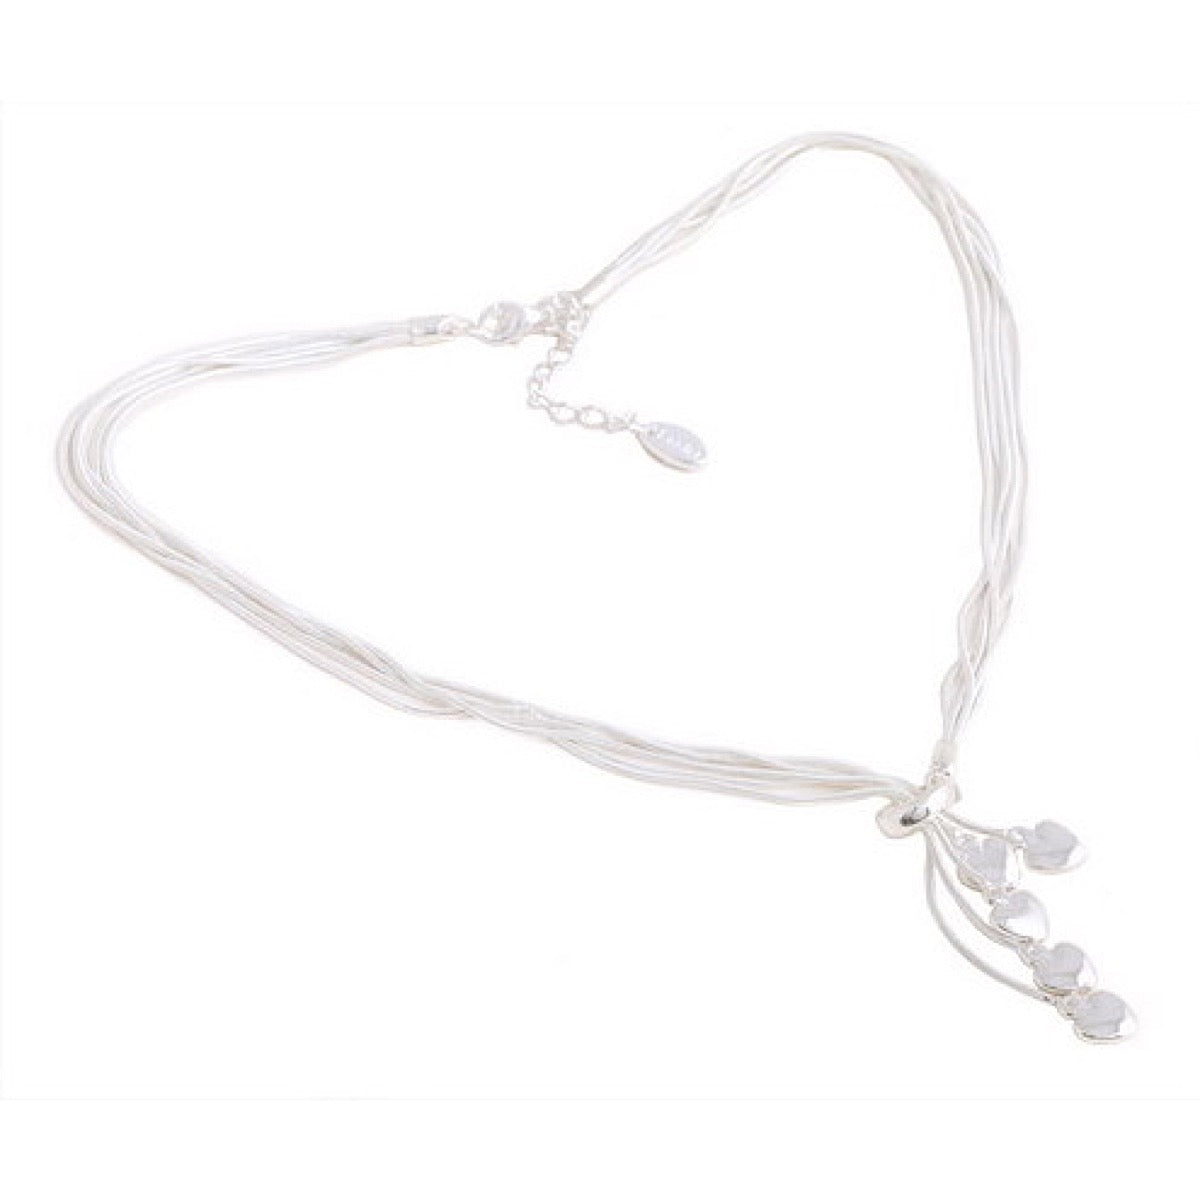 Heart Charms Silver Plated 5 Strands Necklace